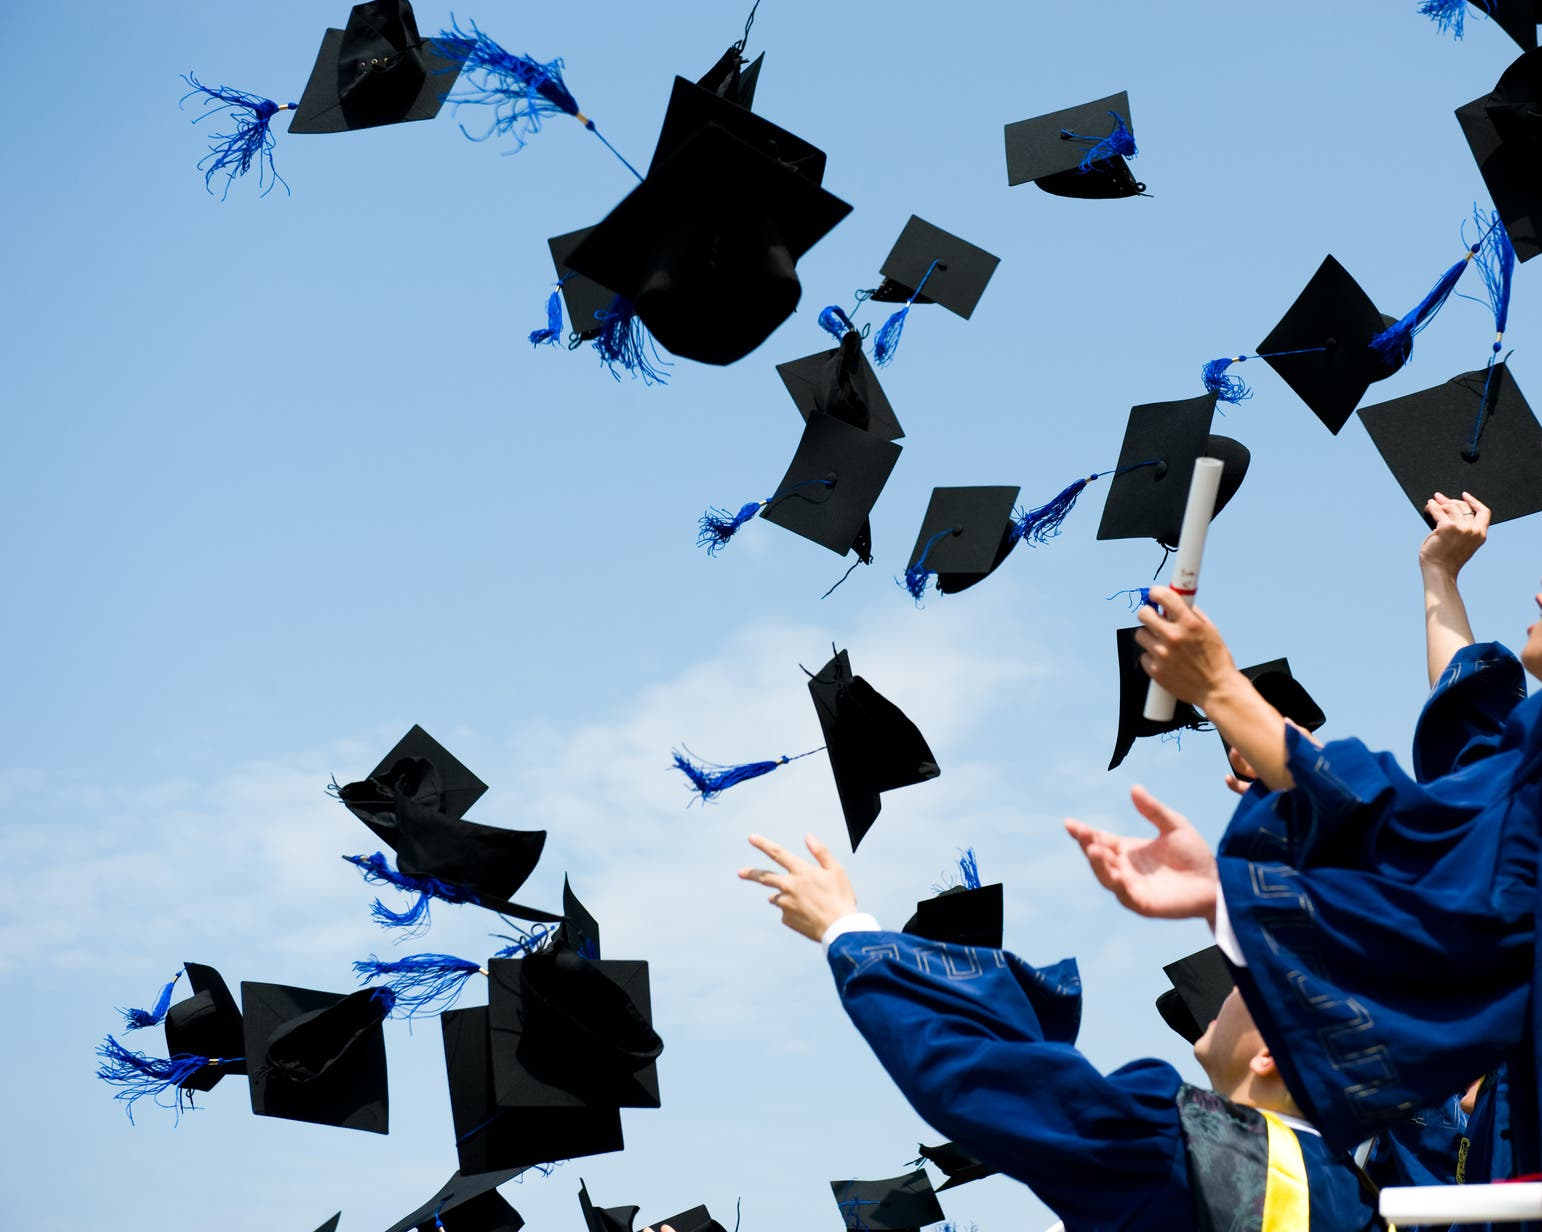 Fees for degrees in Andalucia are lower than most of Spain